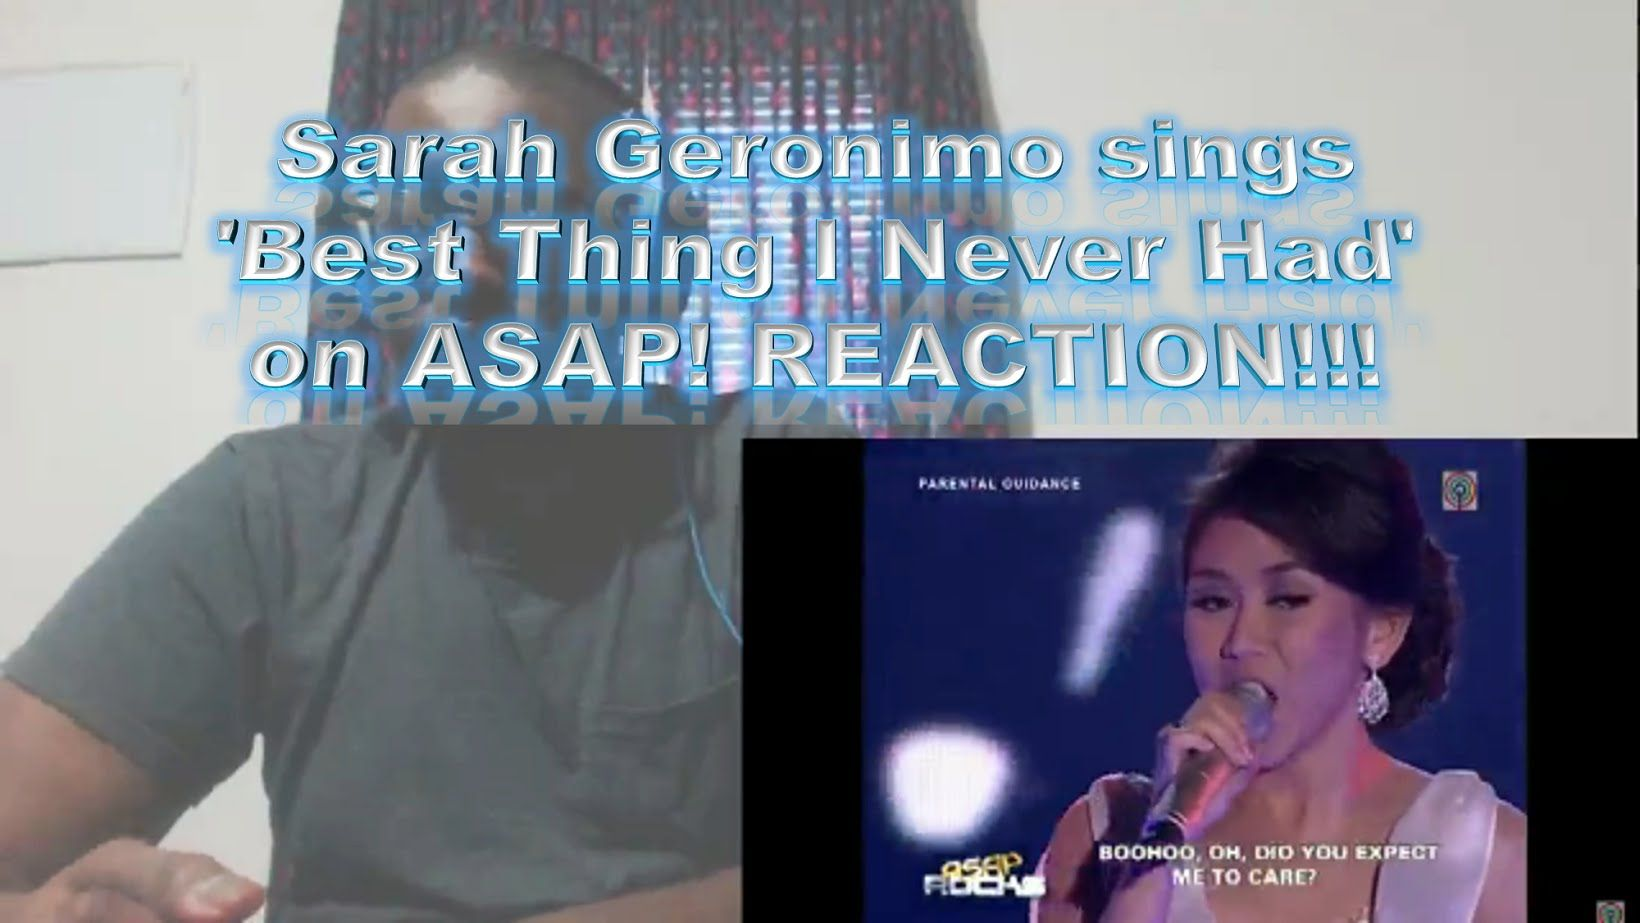 Sarah Geronimo Sings Best Thing I Never Had On Asap Reaction